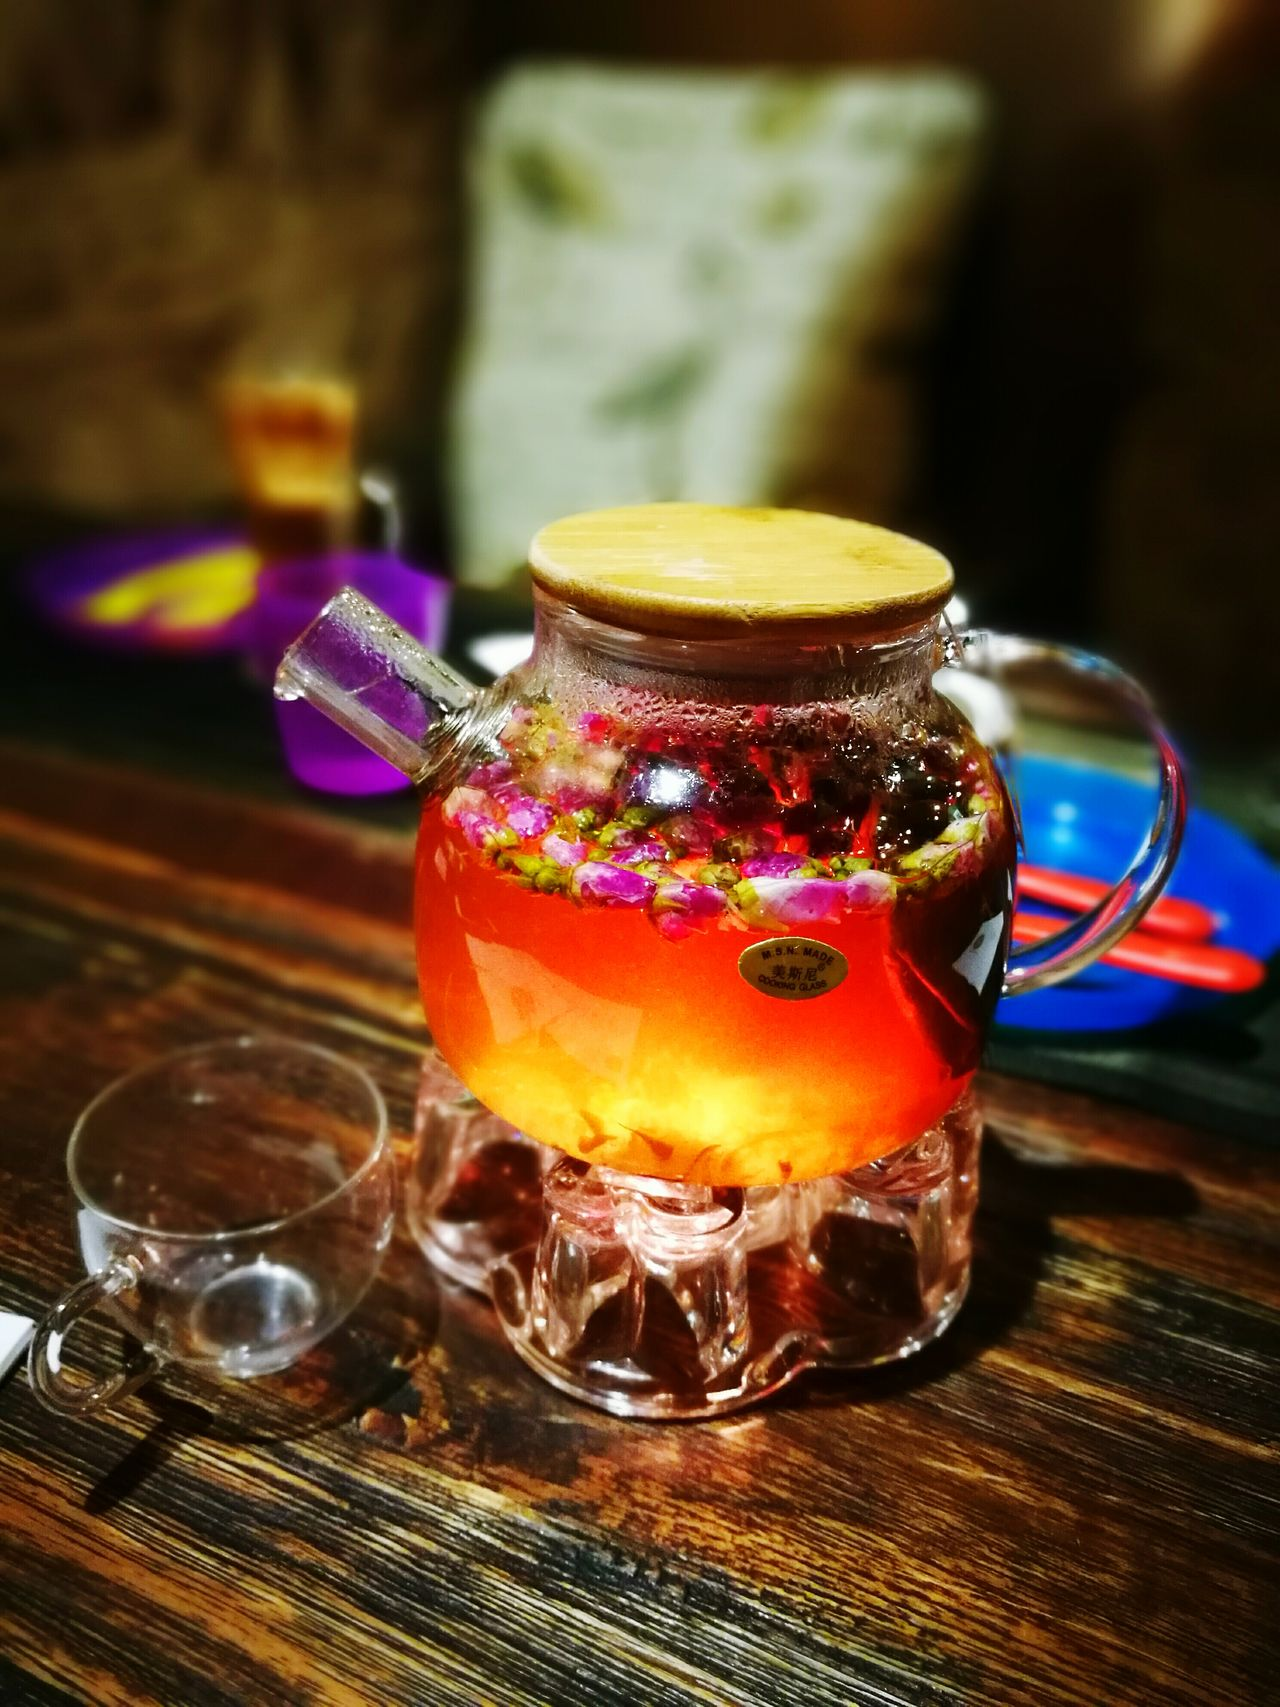 Rose Tea Drinking Glass Sweet Food Drink Freshness